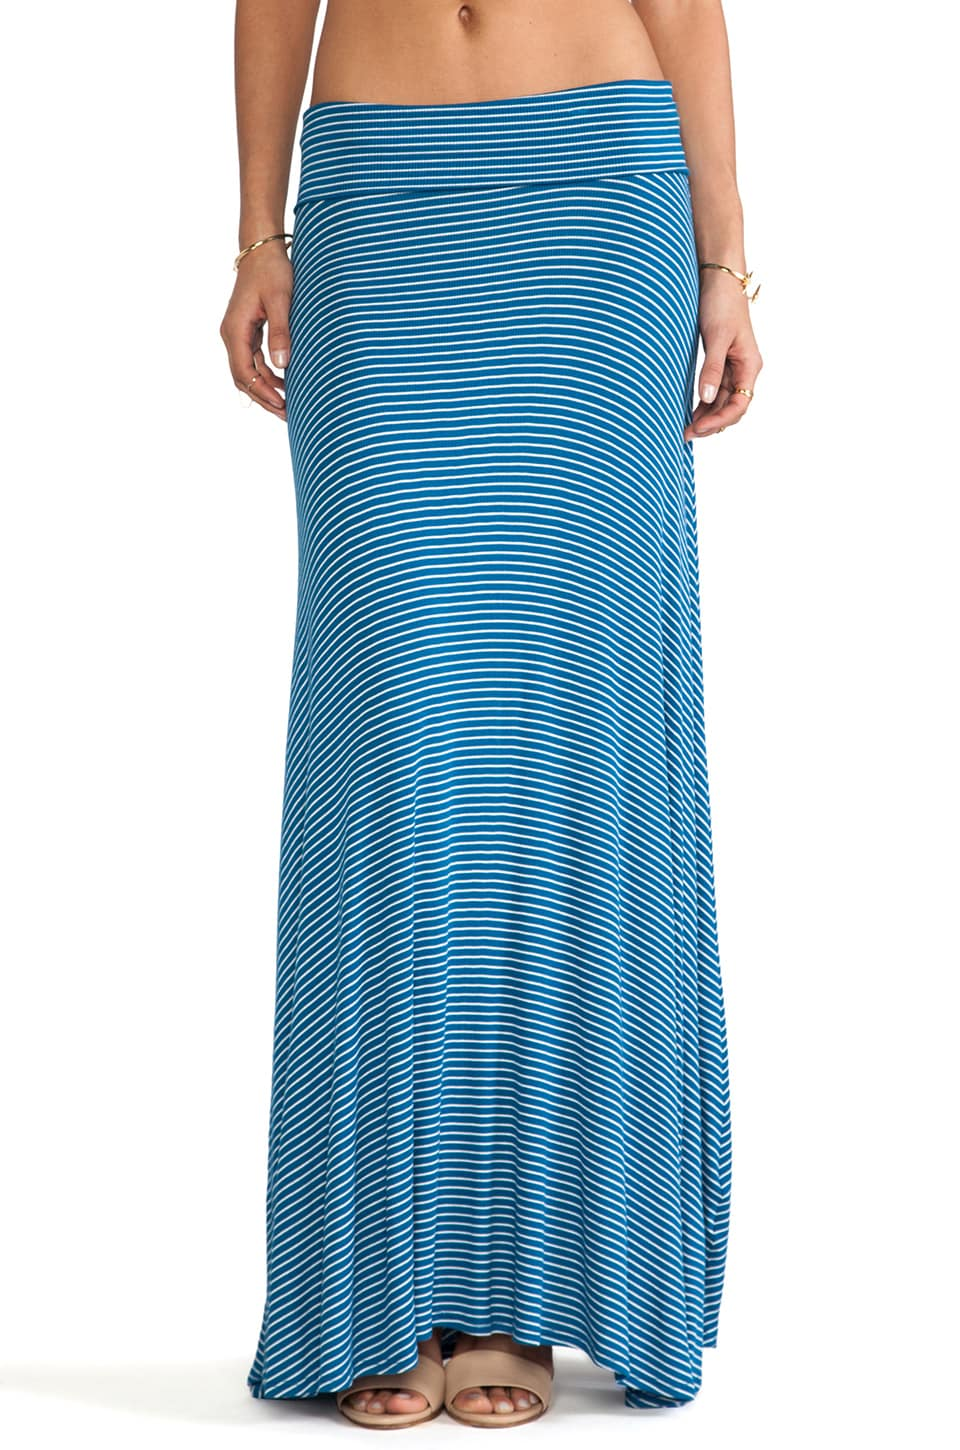 Rachel Pally Rib Full Long Skirt in Blue Stripe